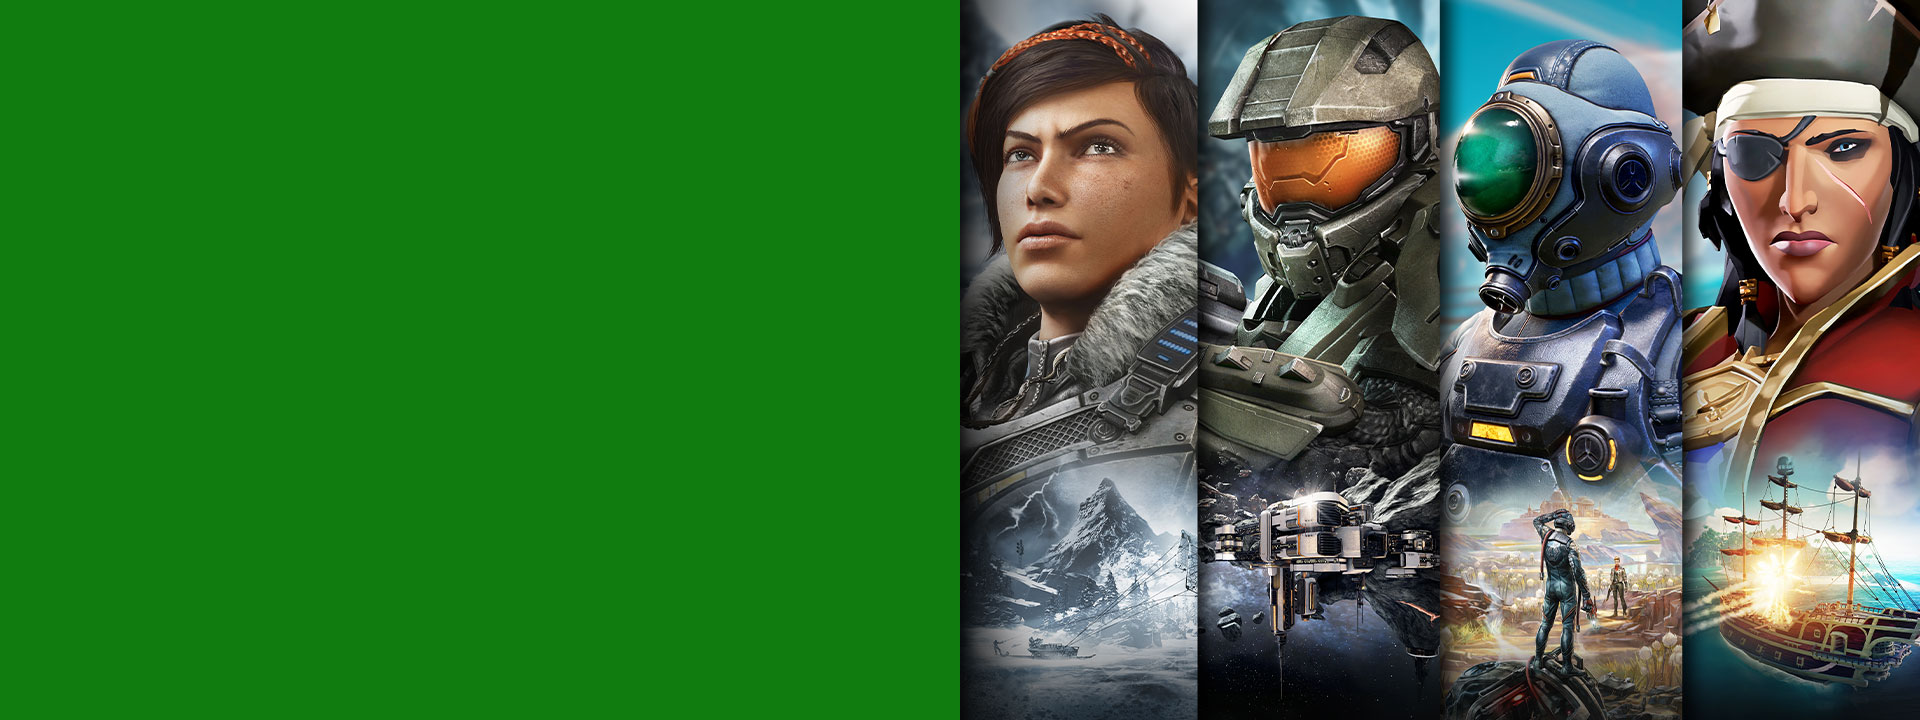 『Gears 5』、『Halo』、『The Outer Worlds』、『Sea of Thieves』 の Xbox Game Pass ゲーム キャラクター。